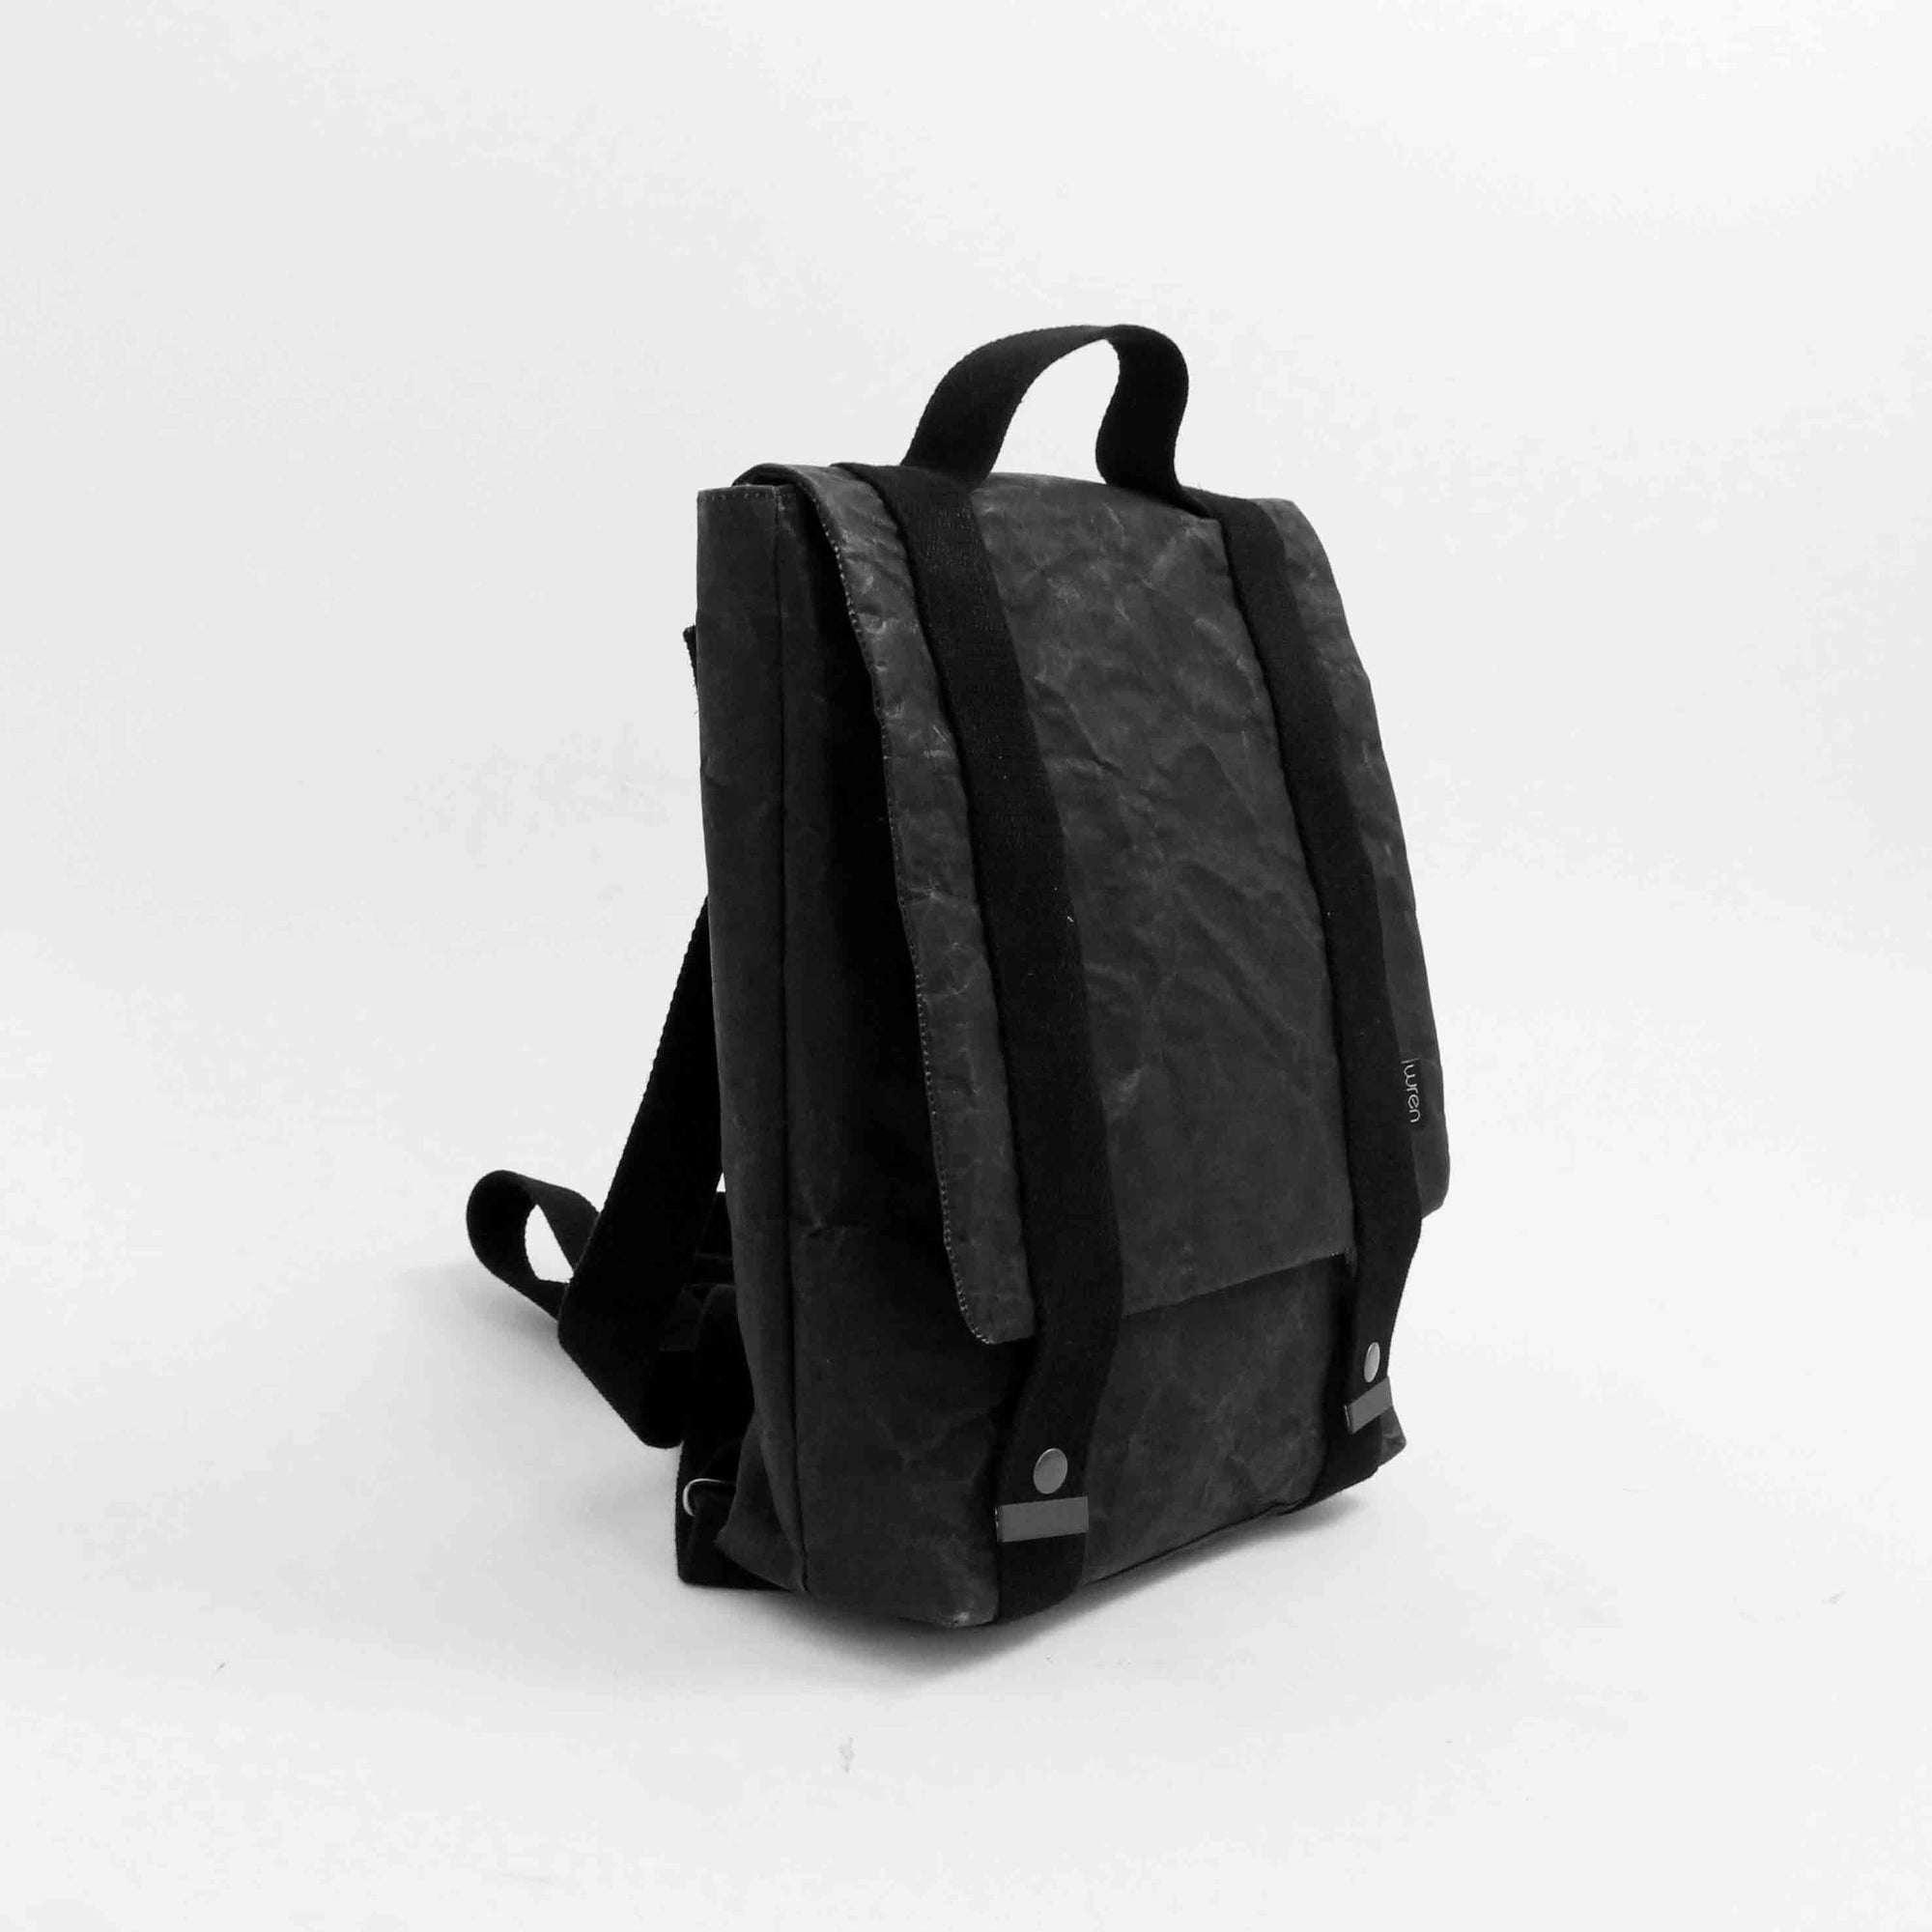 PAPER BACKPACK by Wren at SARZA. accessories, backpack, bags, Wren